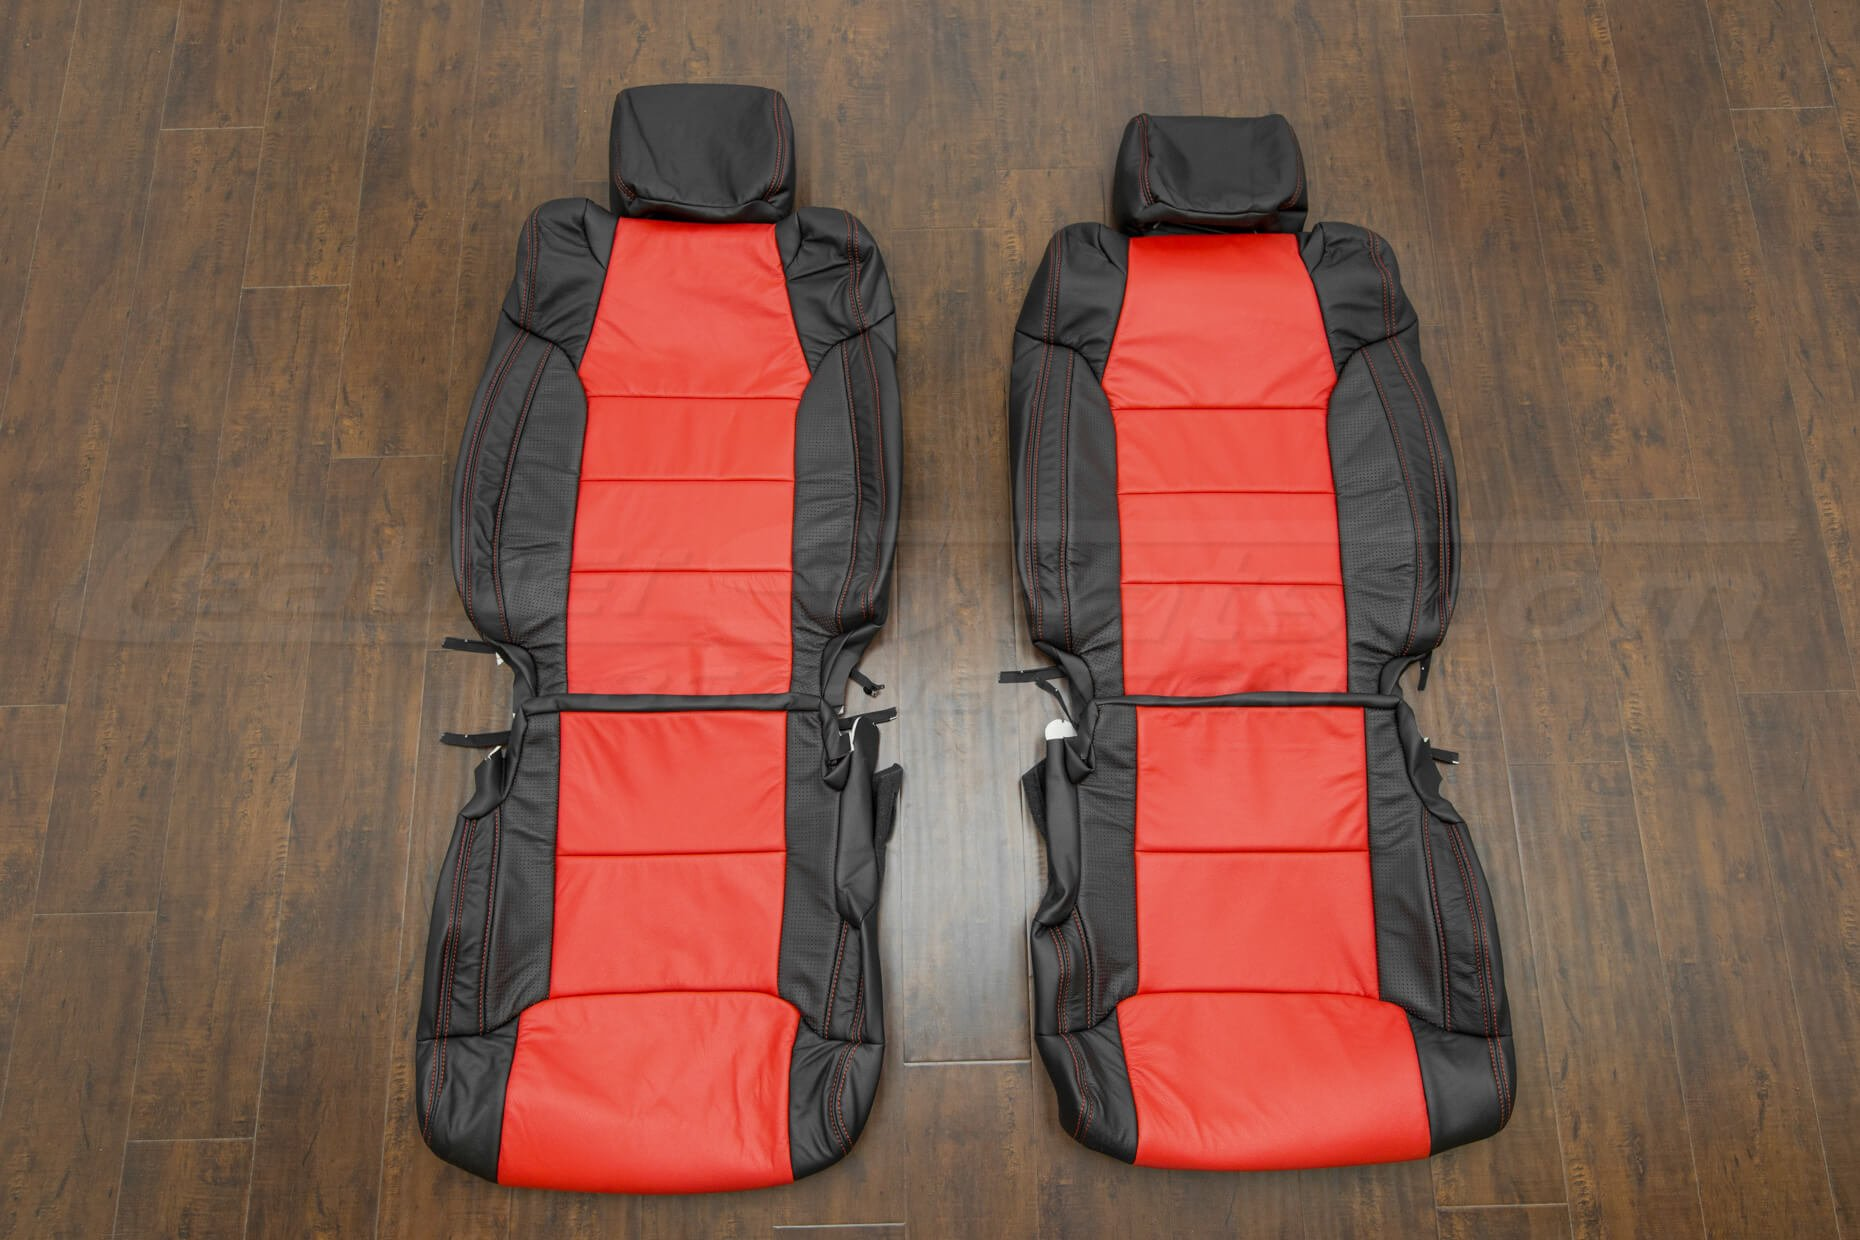 Toyota Tundra leather upholstery kit - black/bright red/piazza red